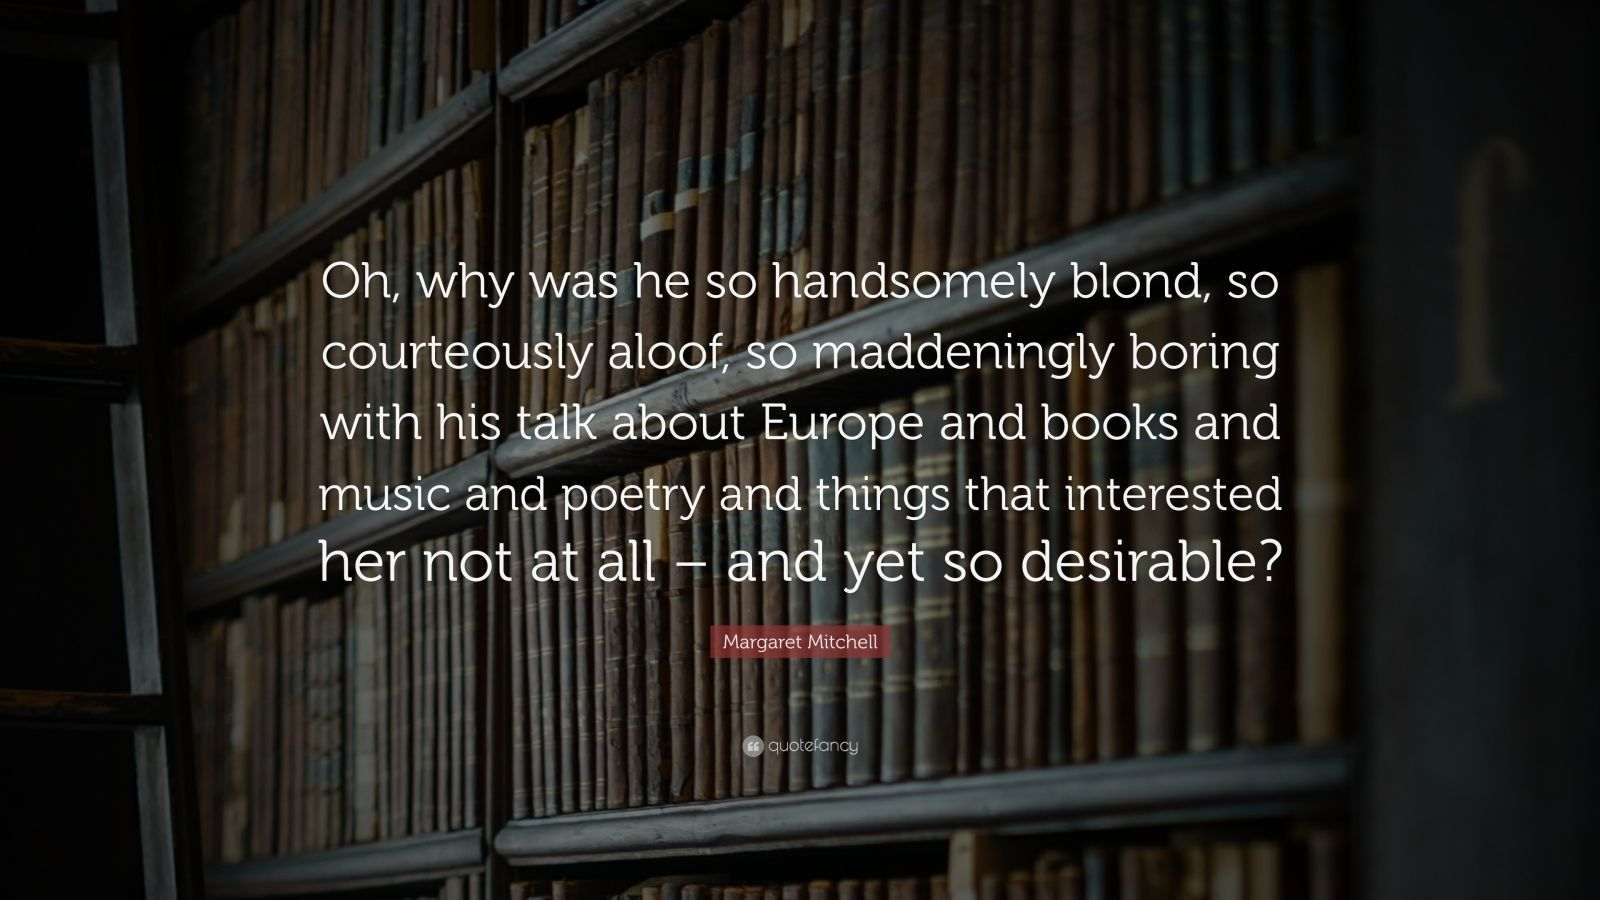 """Margaret Mitchell Quote: """"Oh, why was he so handsomely blond, so courteously aloof, so maddeningly boring with his talk about Europe and books and music and poetry and things that interested her not at all – and yet so desirable?"""""""